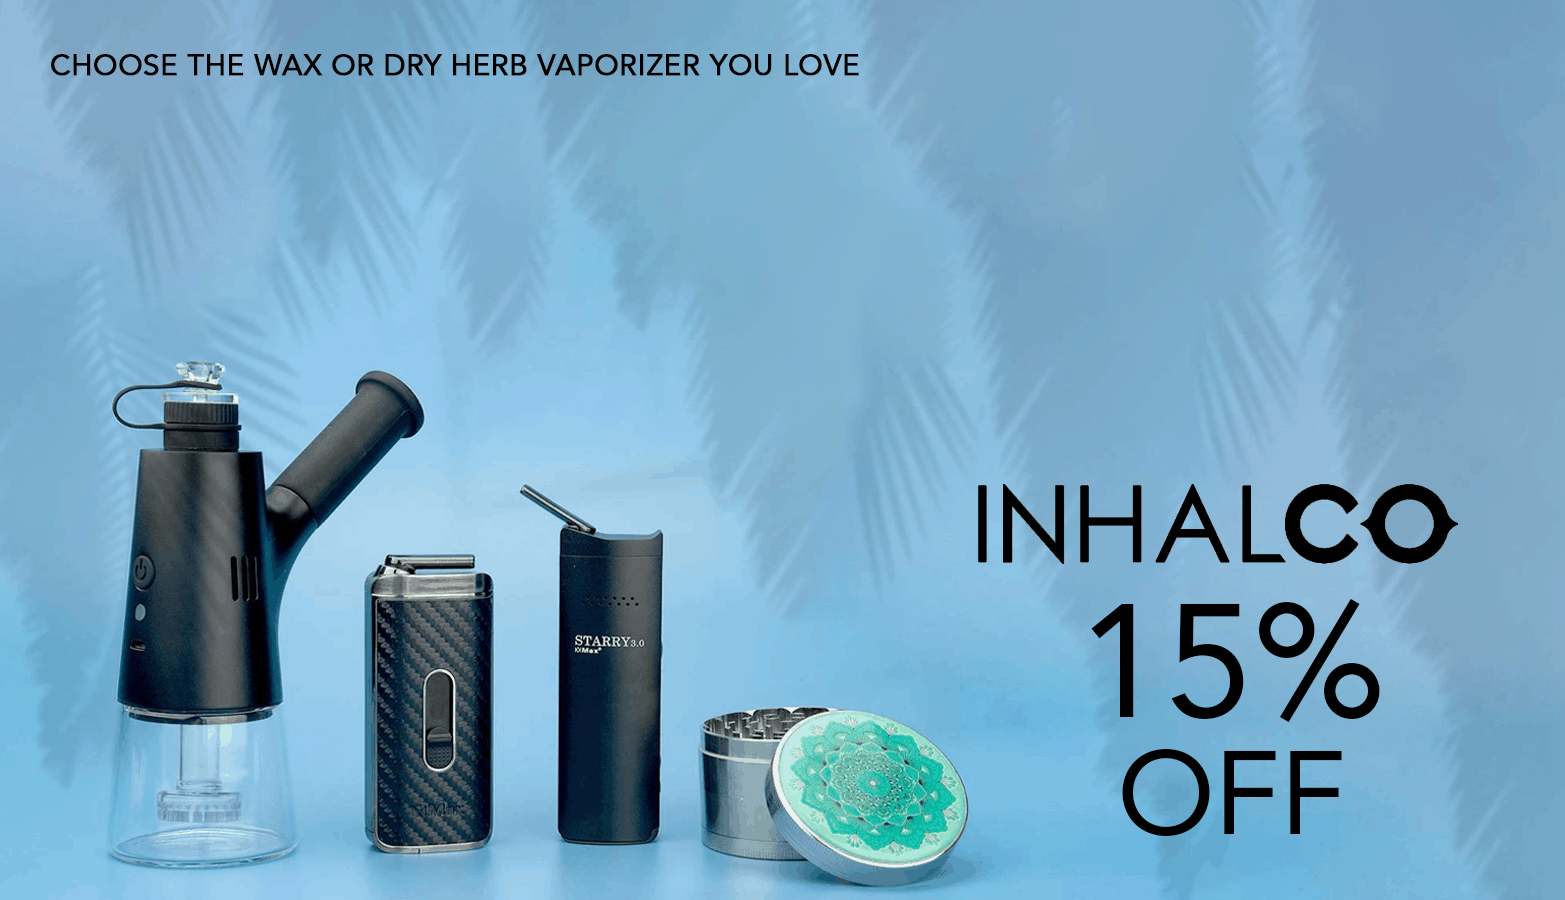 Inhalco Accessories Subscription Box Coupon Code Offer Website